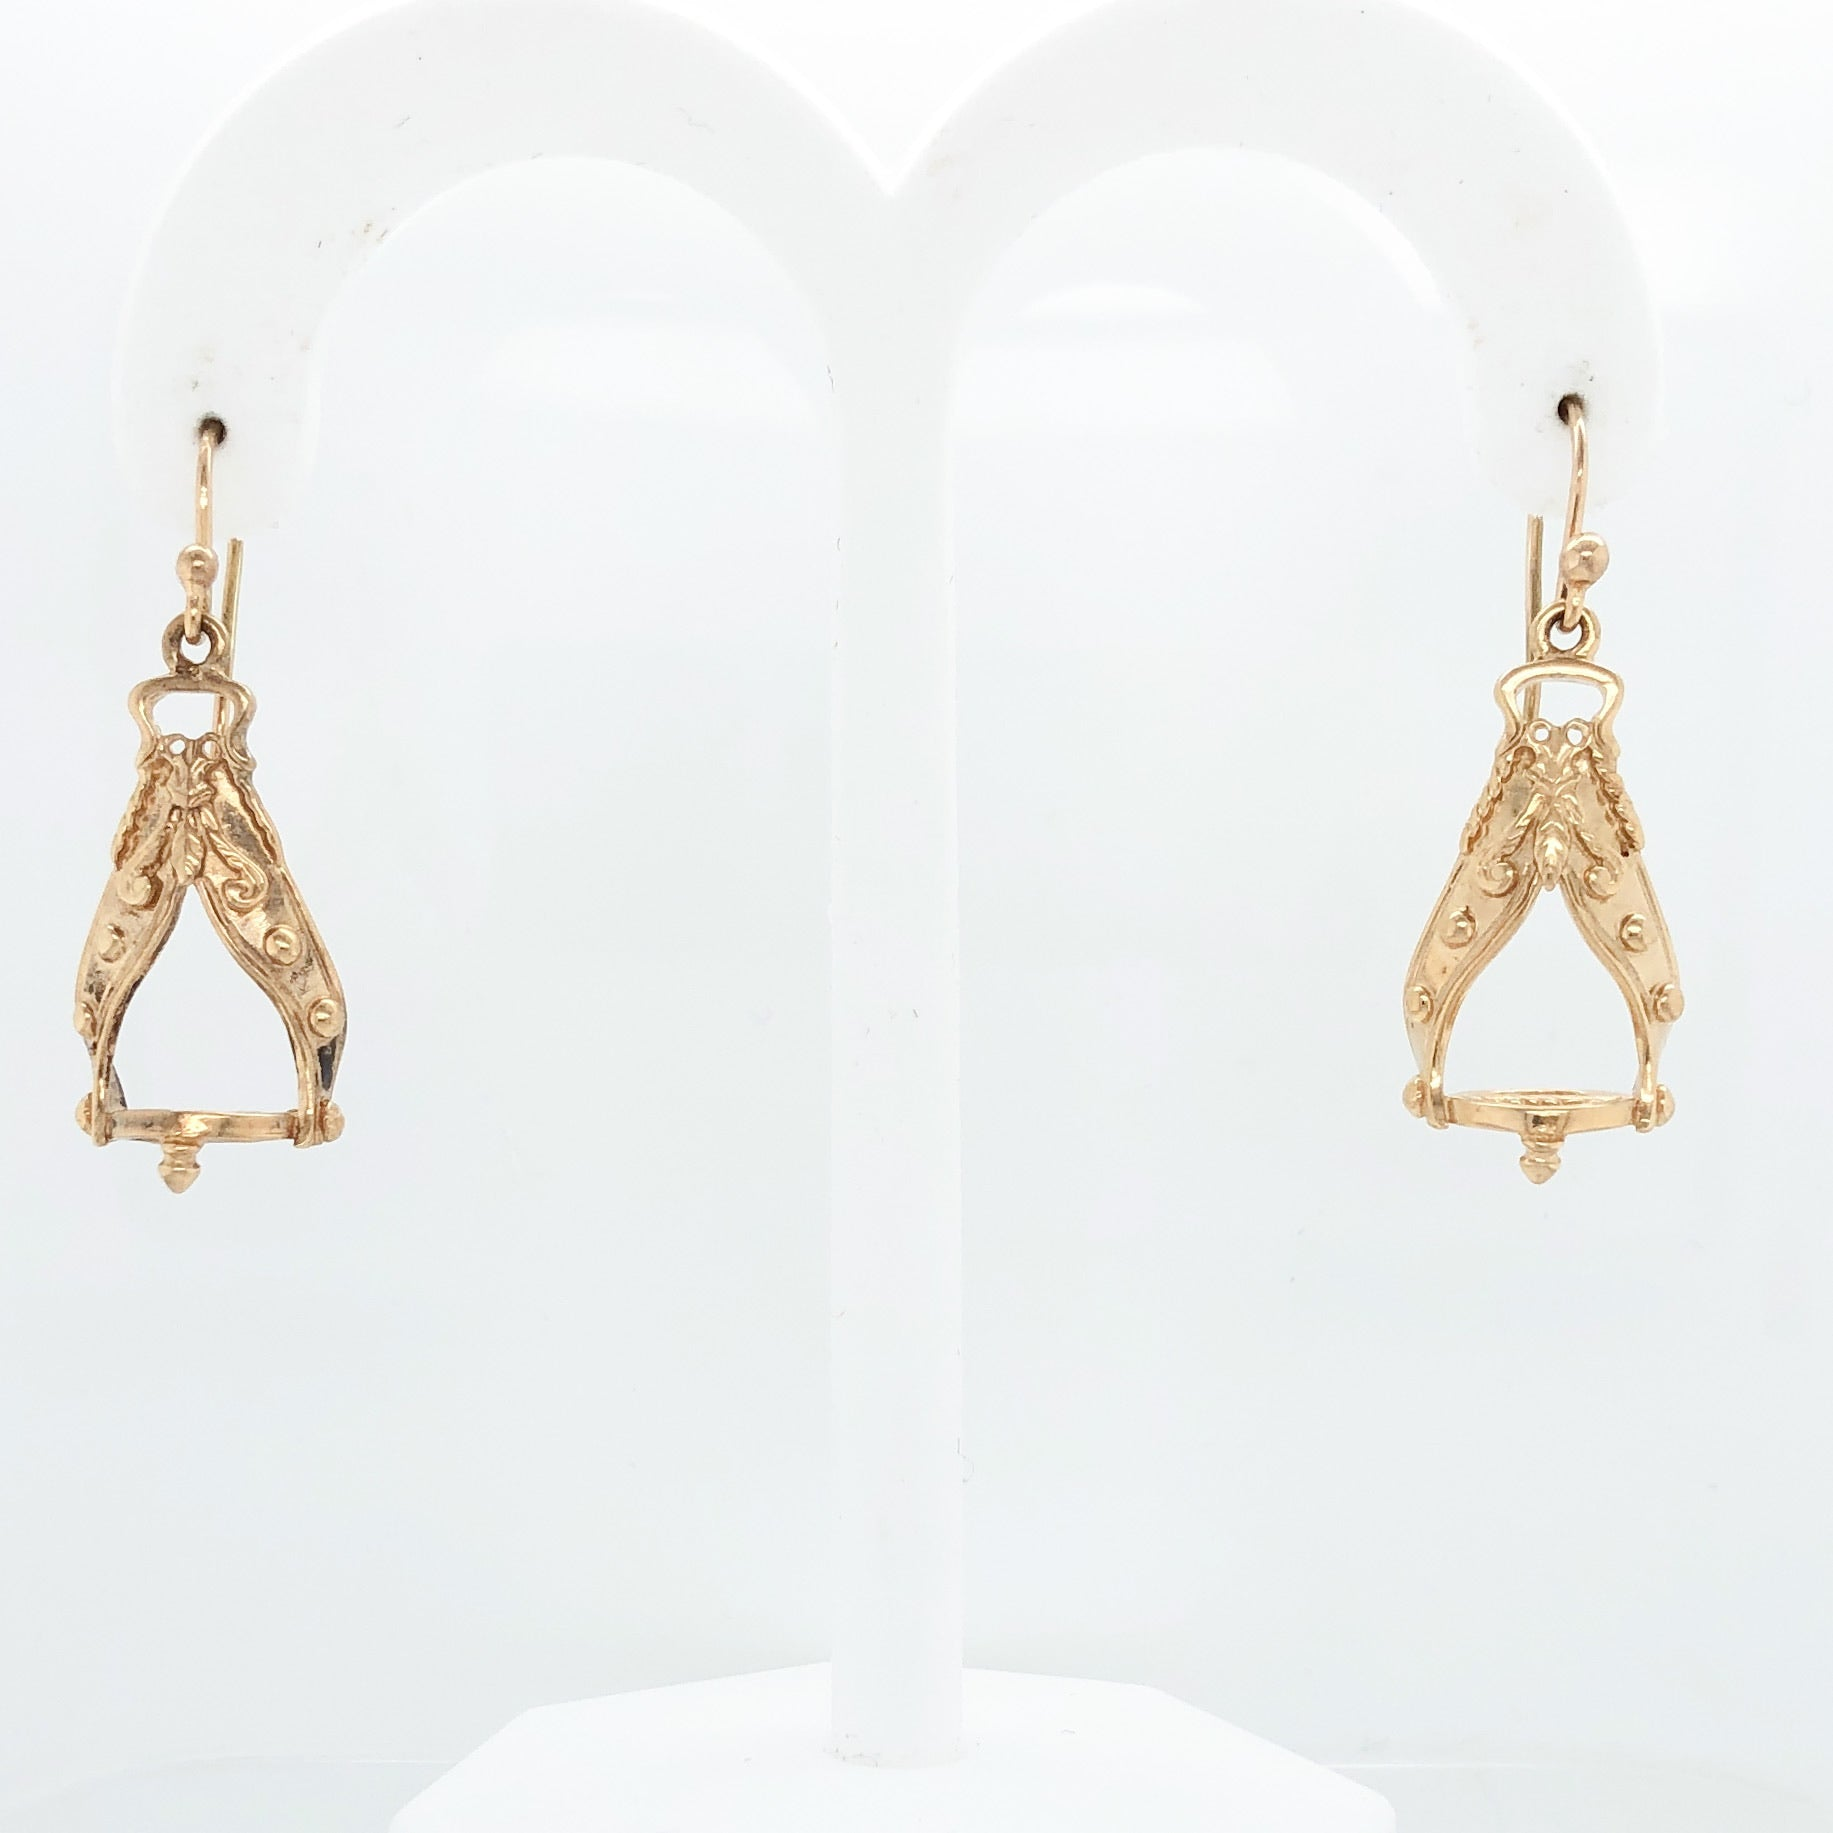 14K Yellow Gold White Horse Collection 15th Century Italian Stirrup Earrings   WHE0004